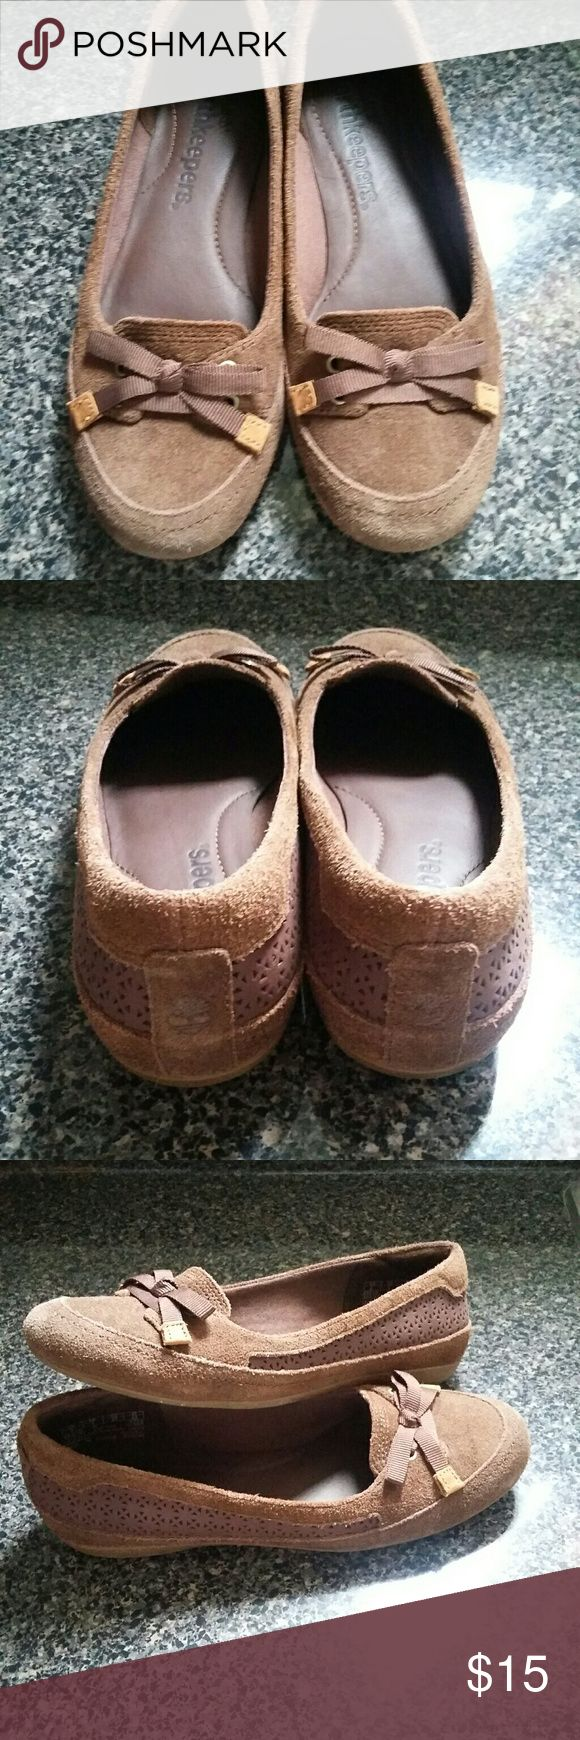 Timberland Earth keepers Brown flats shoes. Super cute! Size 6 in great condition Timberland Shoes Flats & Loafers